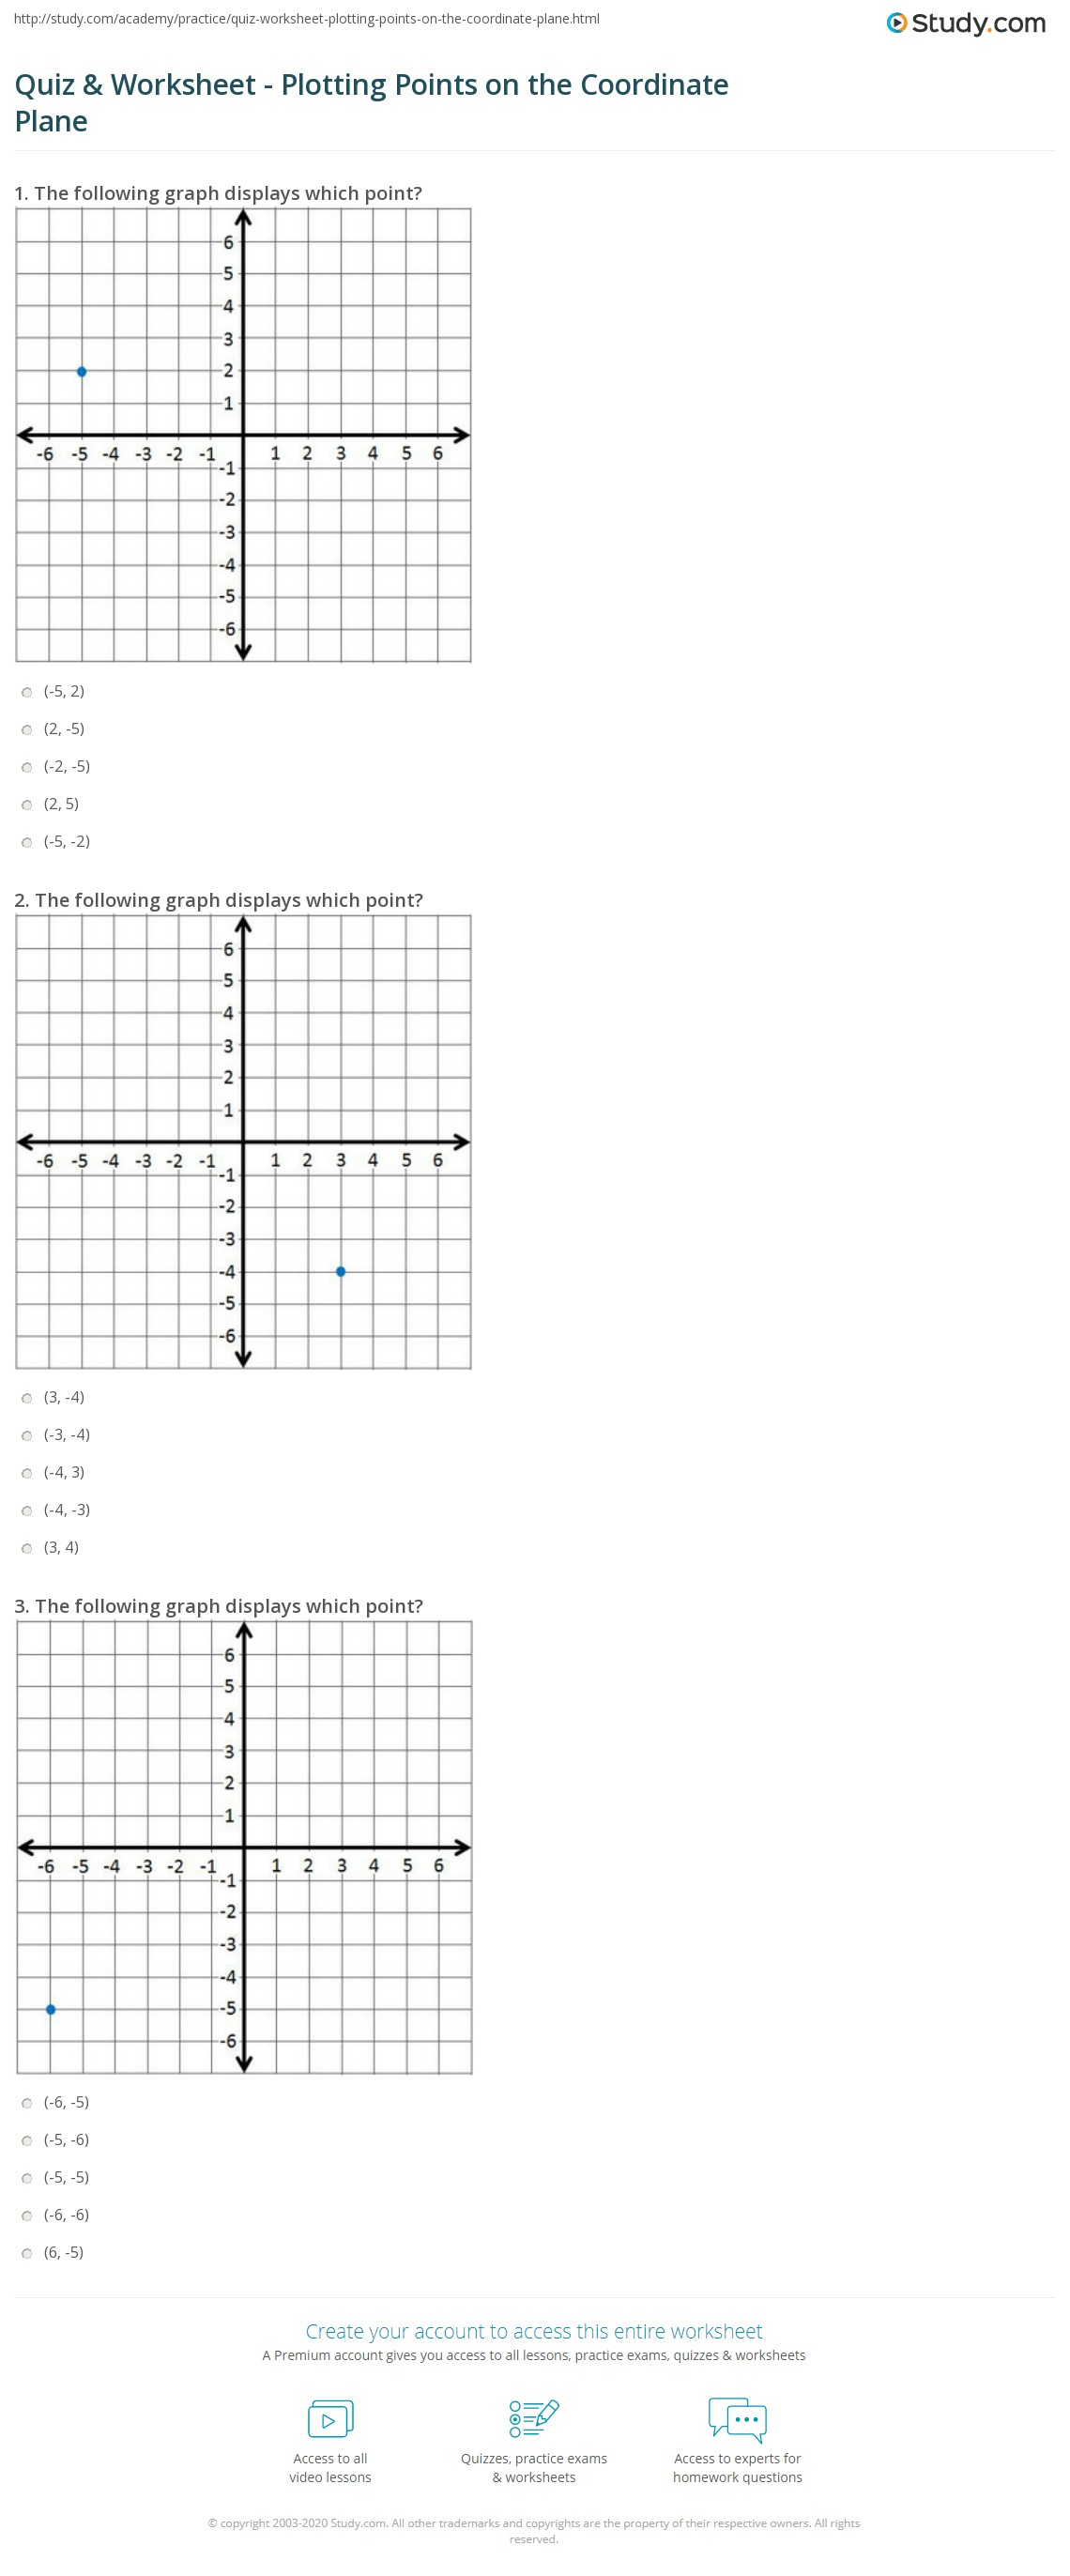 Worksheets Coordinate Plane Worksheet quiz worksheet plotting points on the coordinate plane study com print worksheet